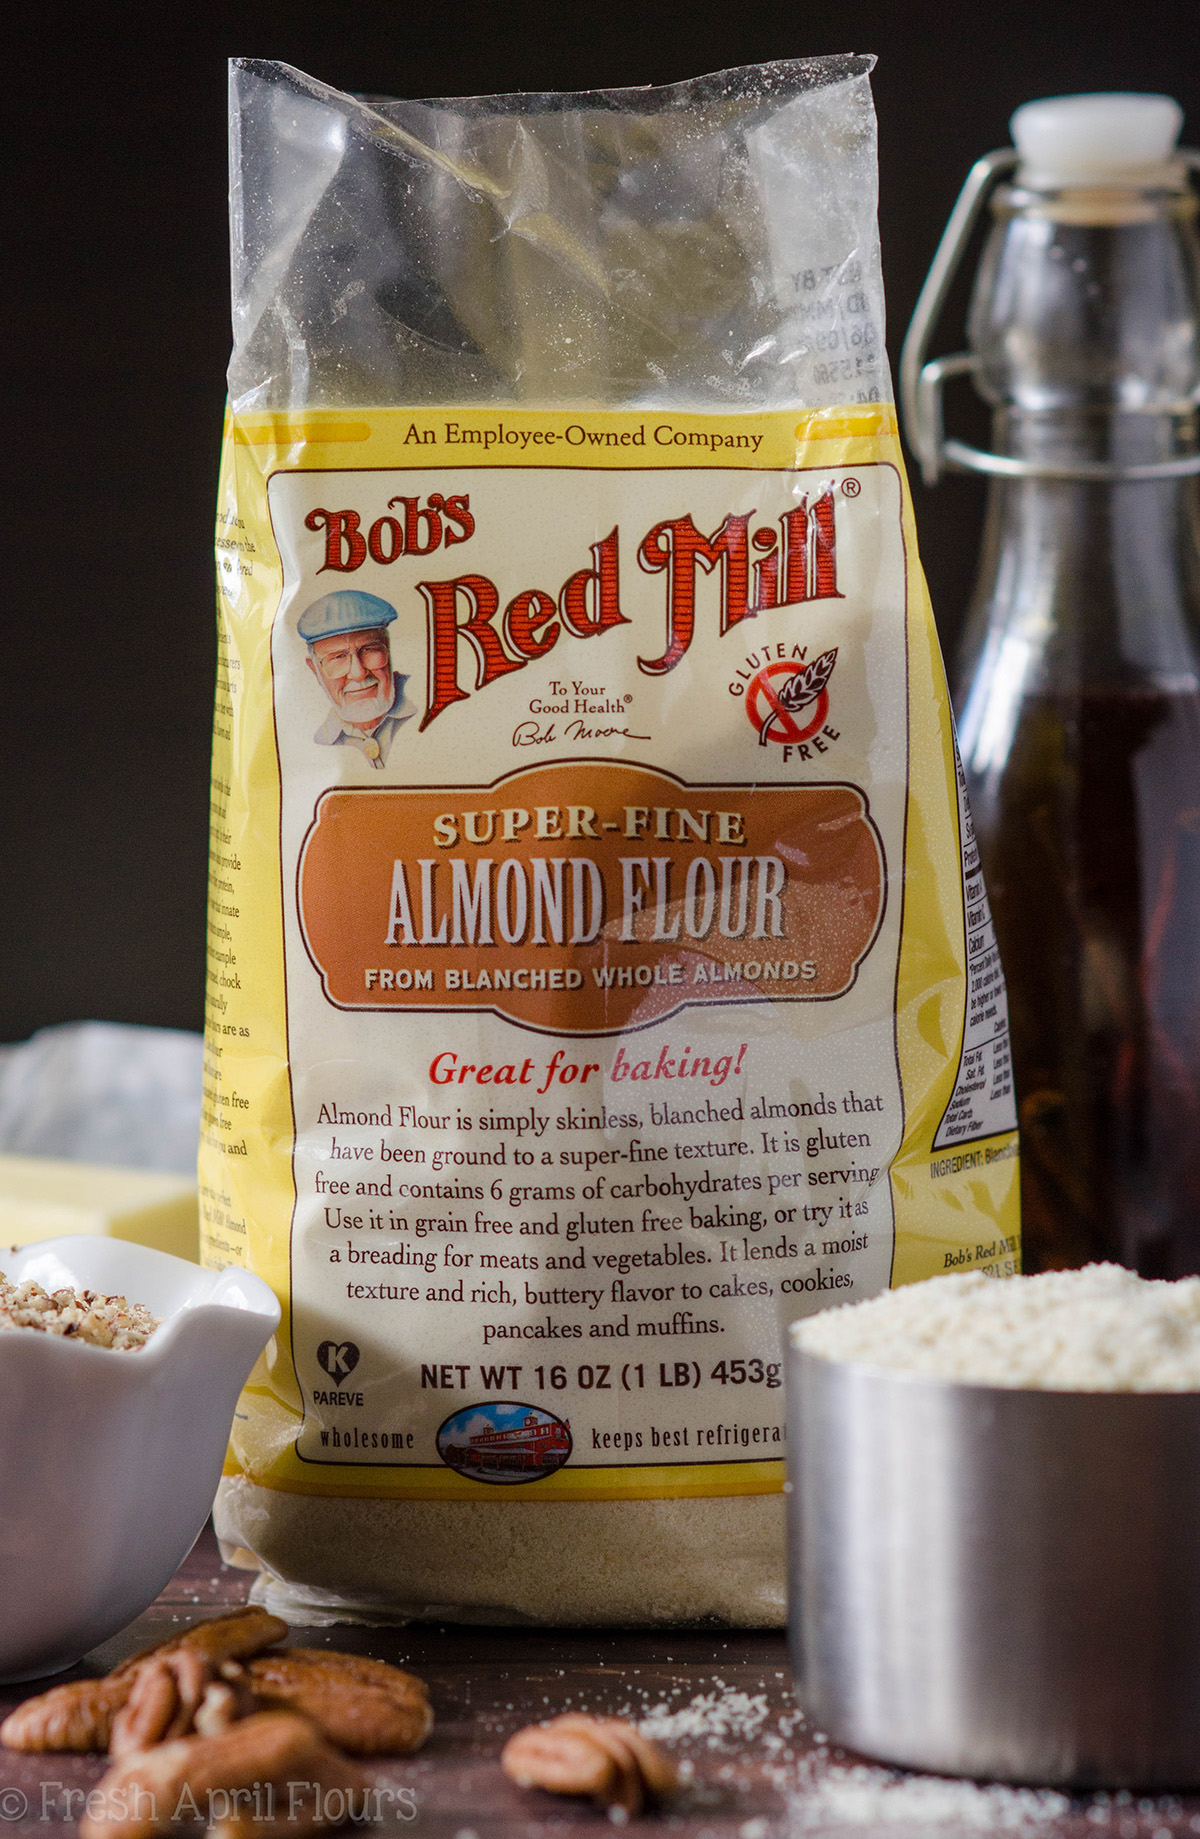 bag of bob's red mill almond flour